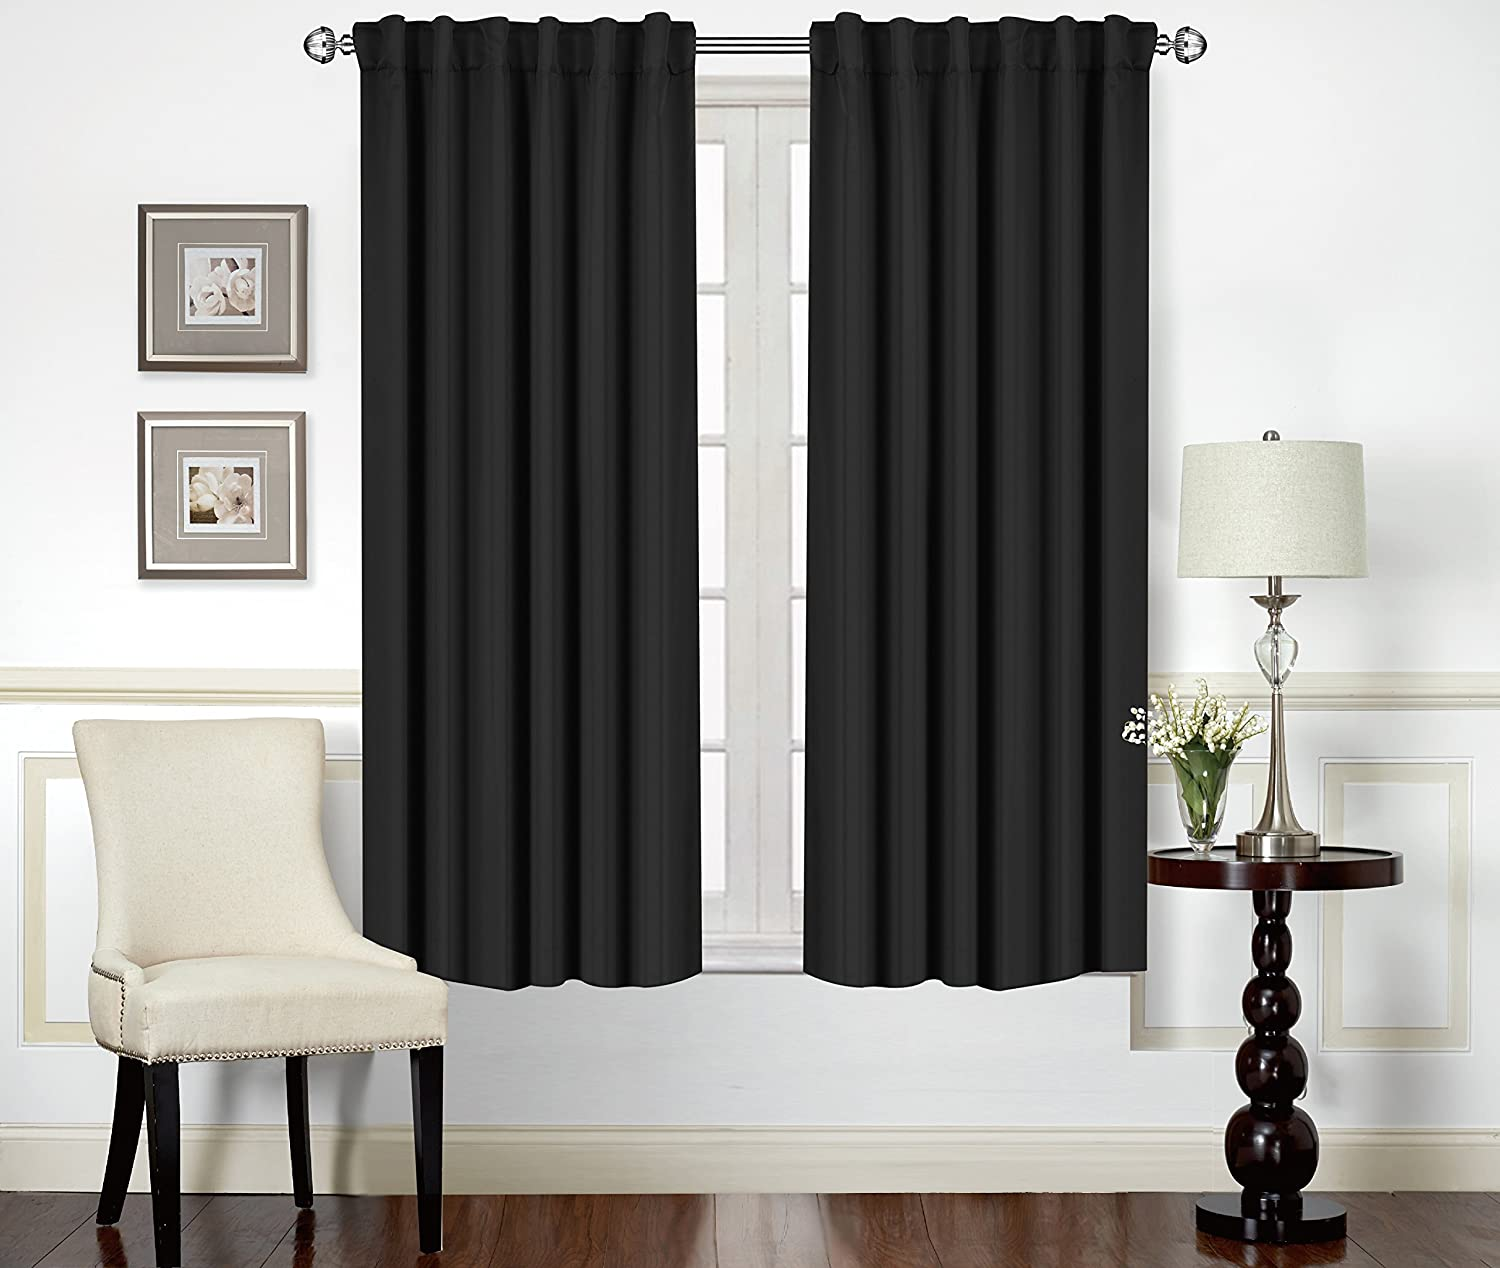 Amazon.com: Blackout Room Darkening Curtains Window Panel Drapes ...